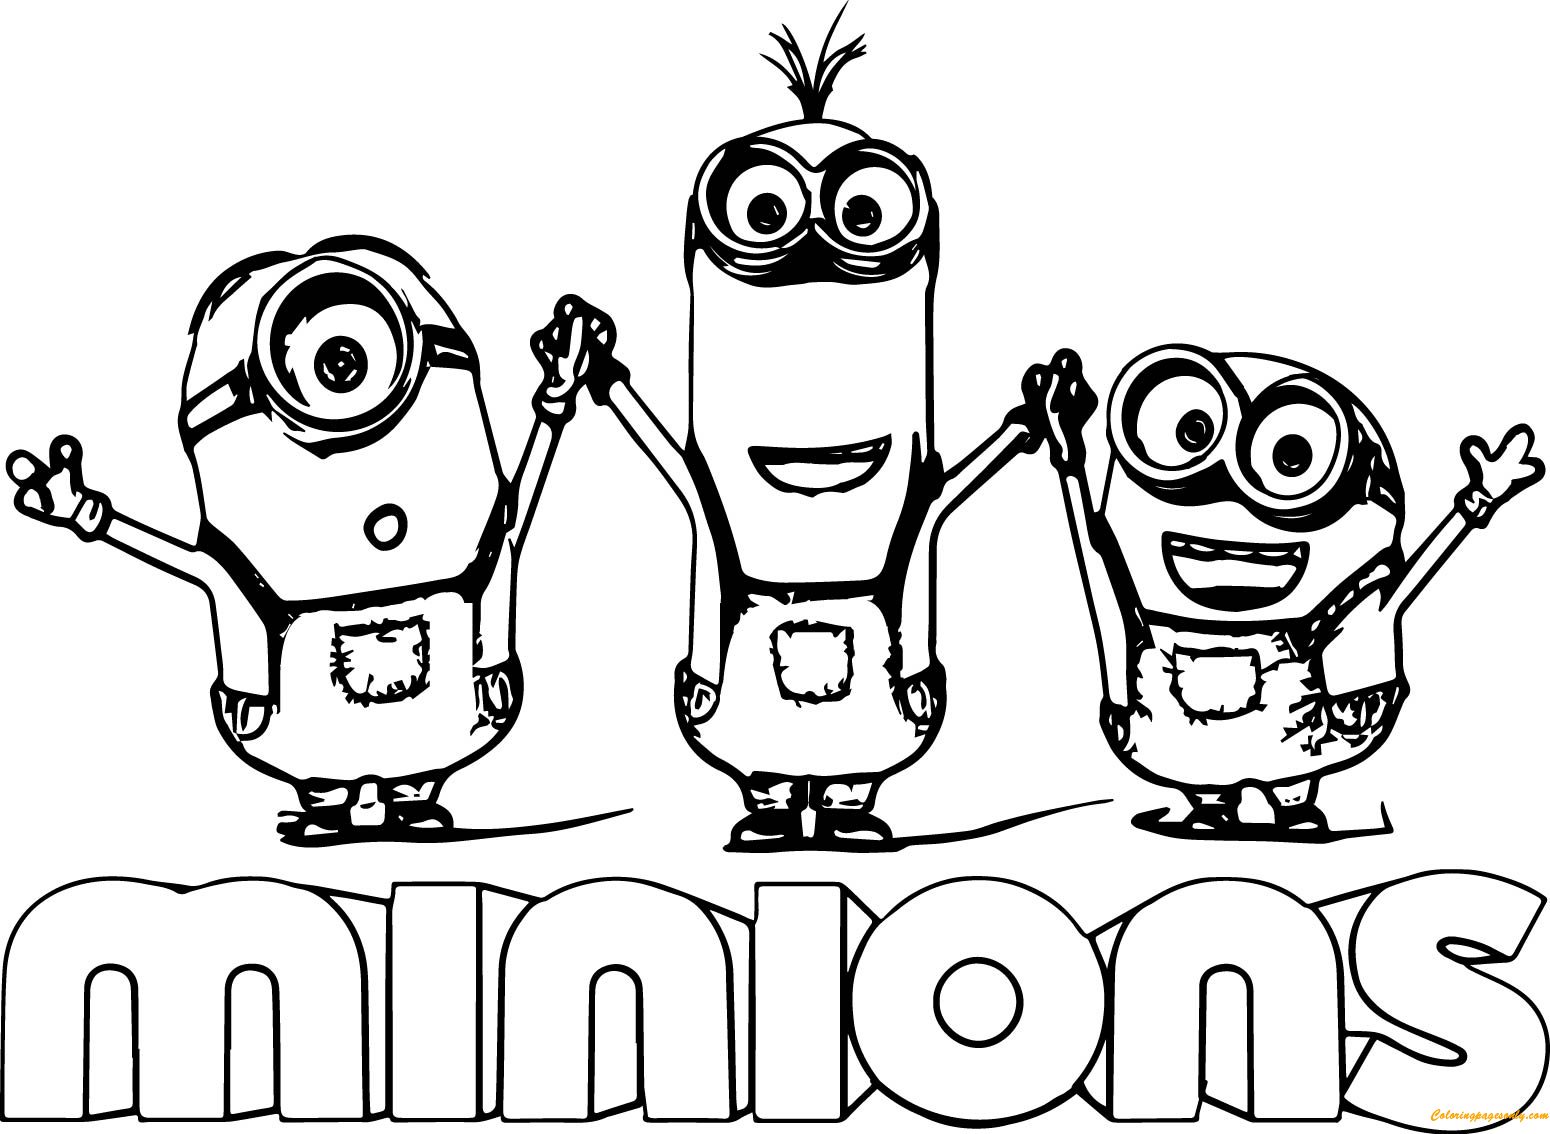 pictures of minions to color pictures of minions to color color pictures of minions to